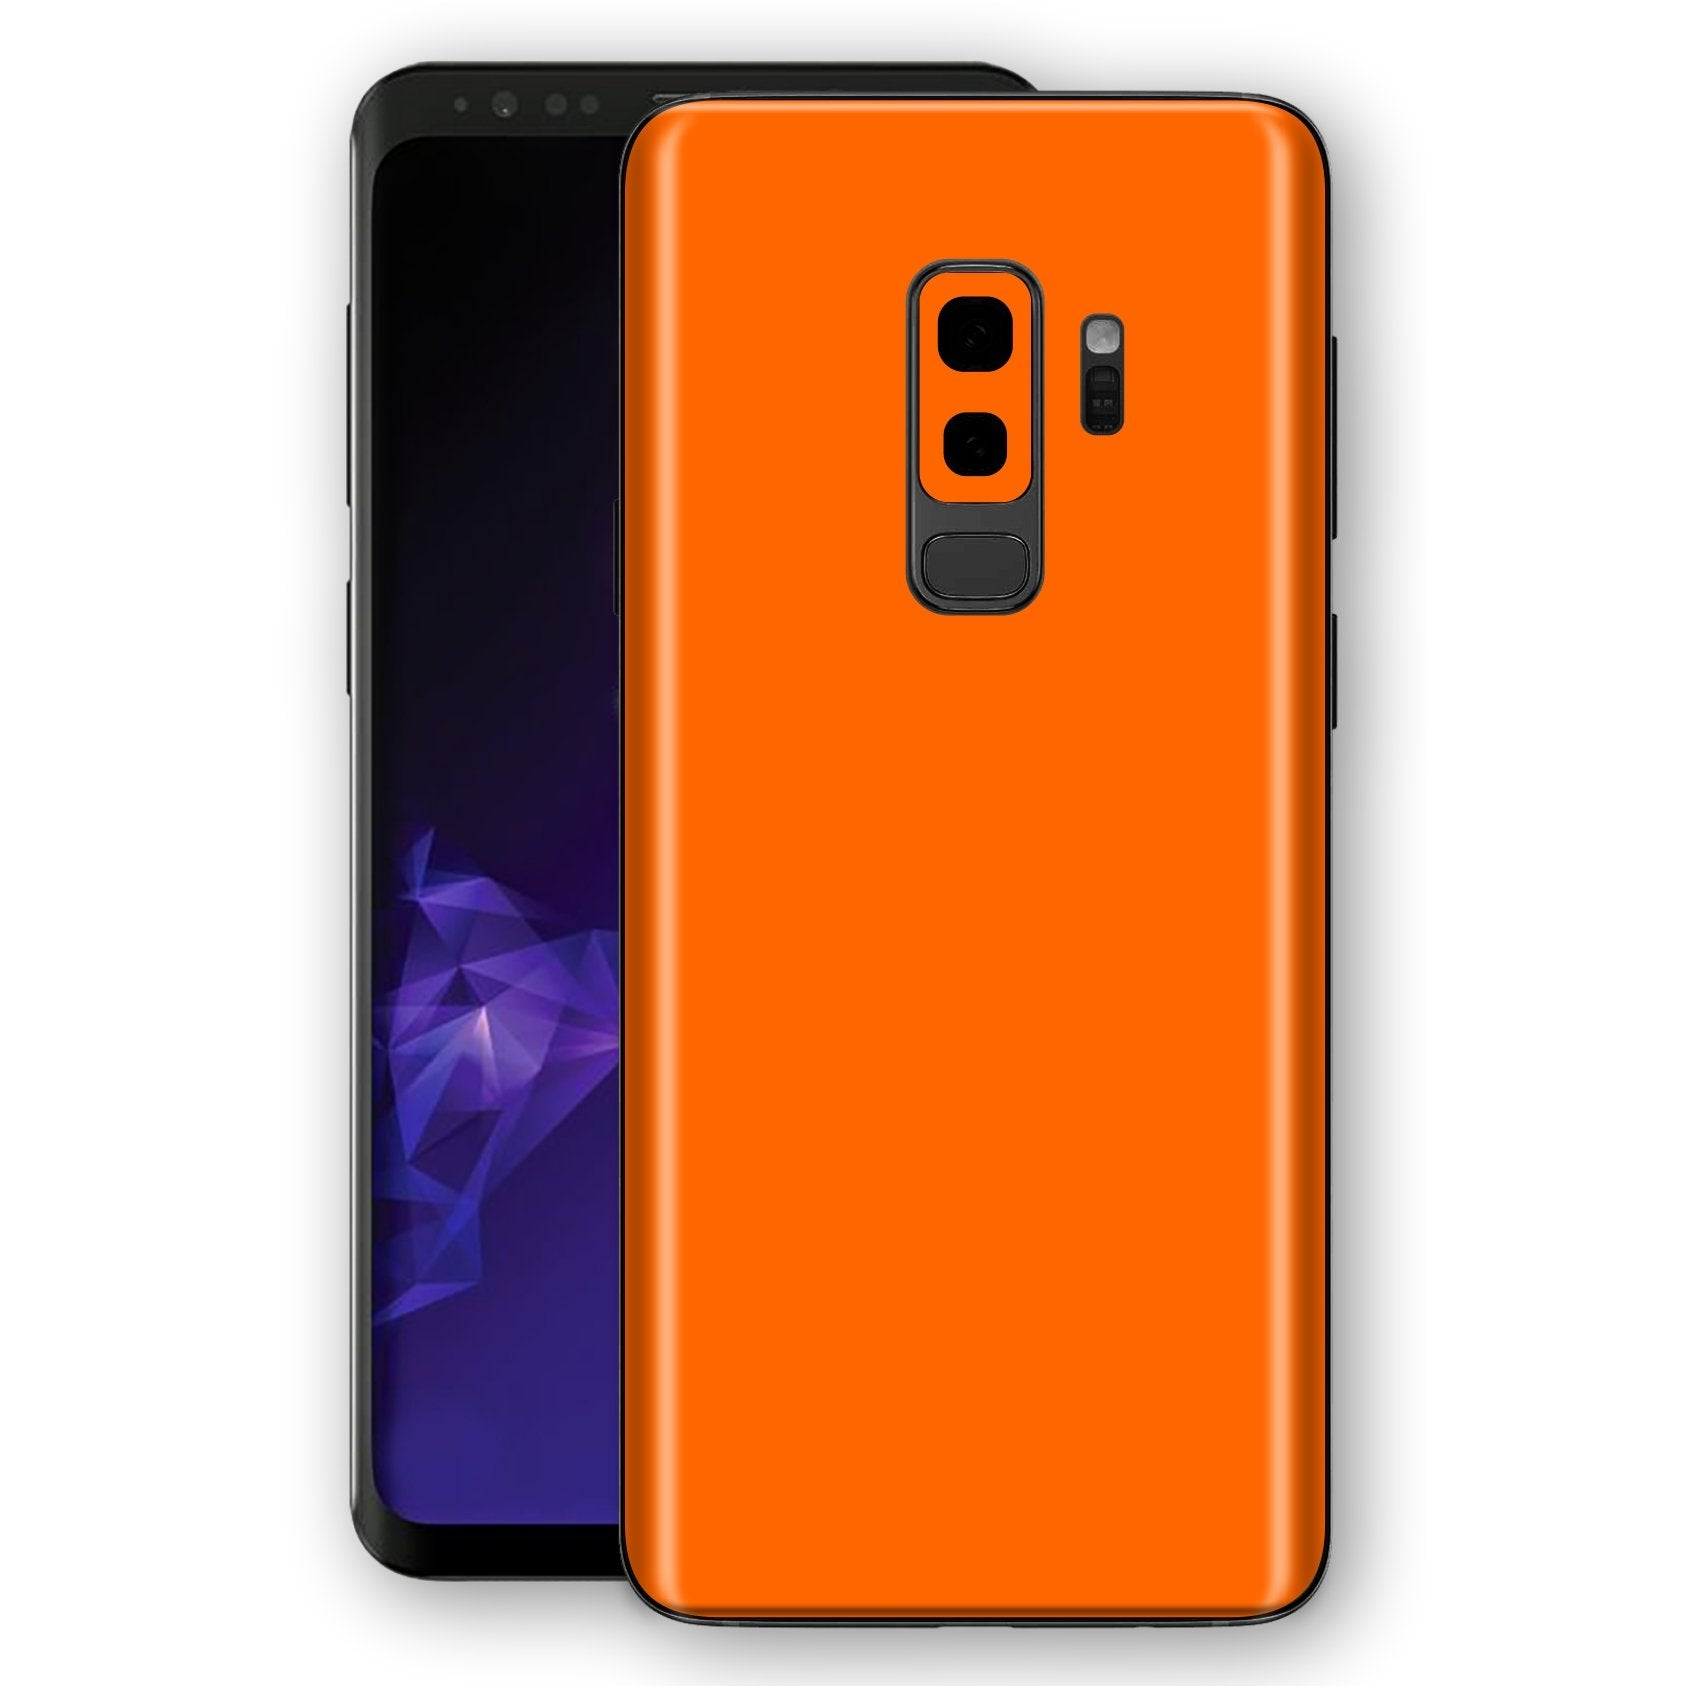 Samsung GALAXY S9+ PLUS Orange Glossy Gloss Finish Skin, Decal, Wrap, Protector, Cover by EasySkinz | EasySkinz.com